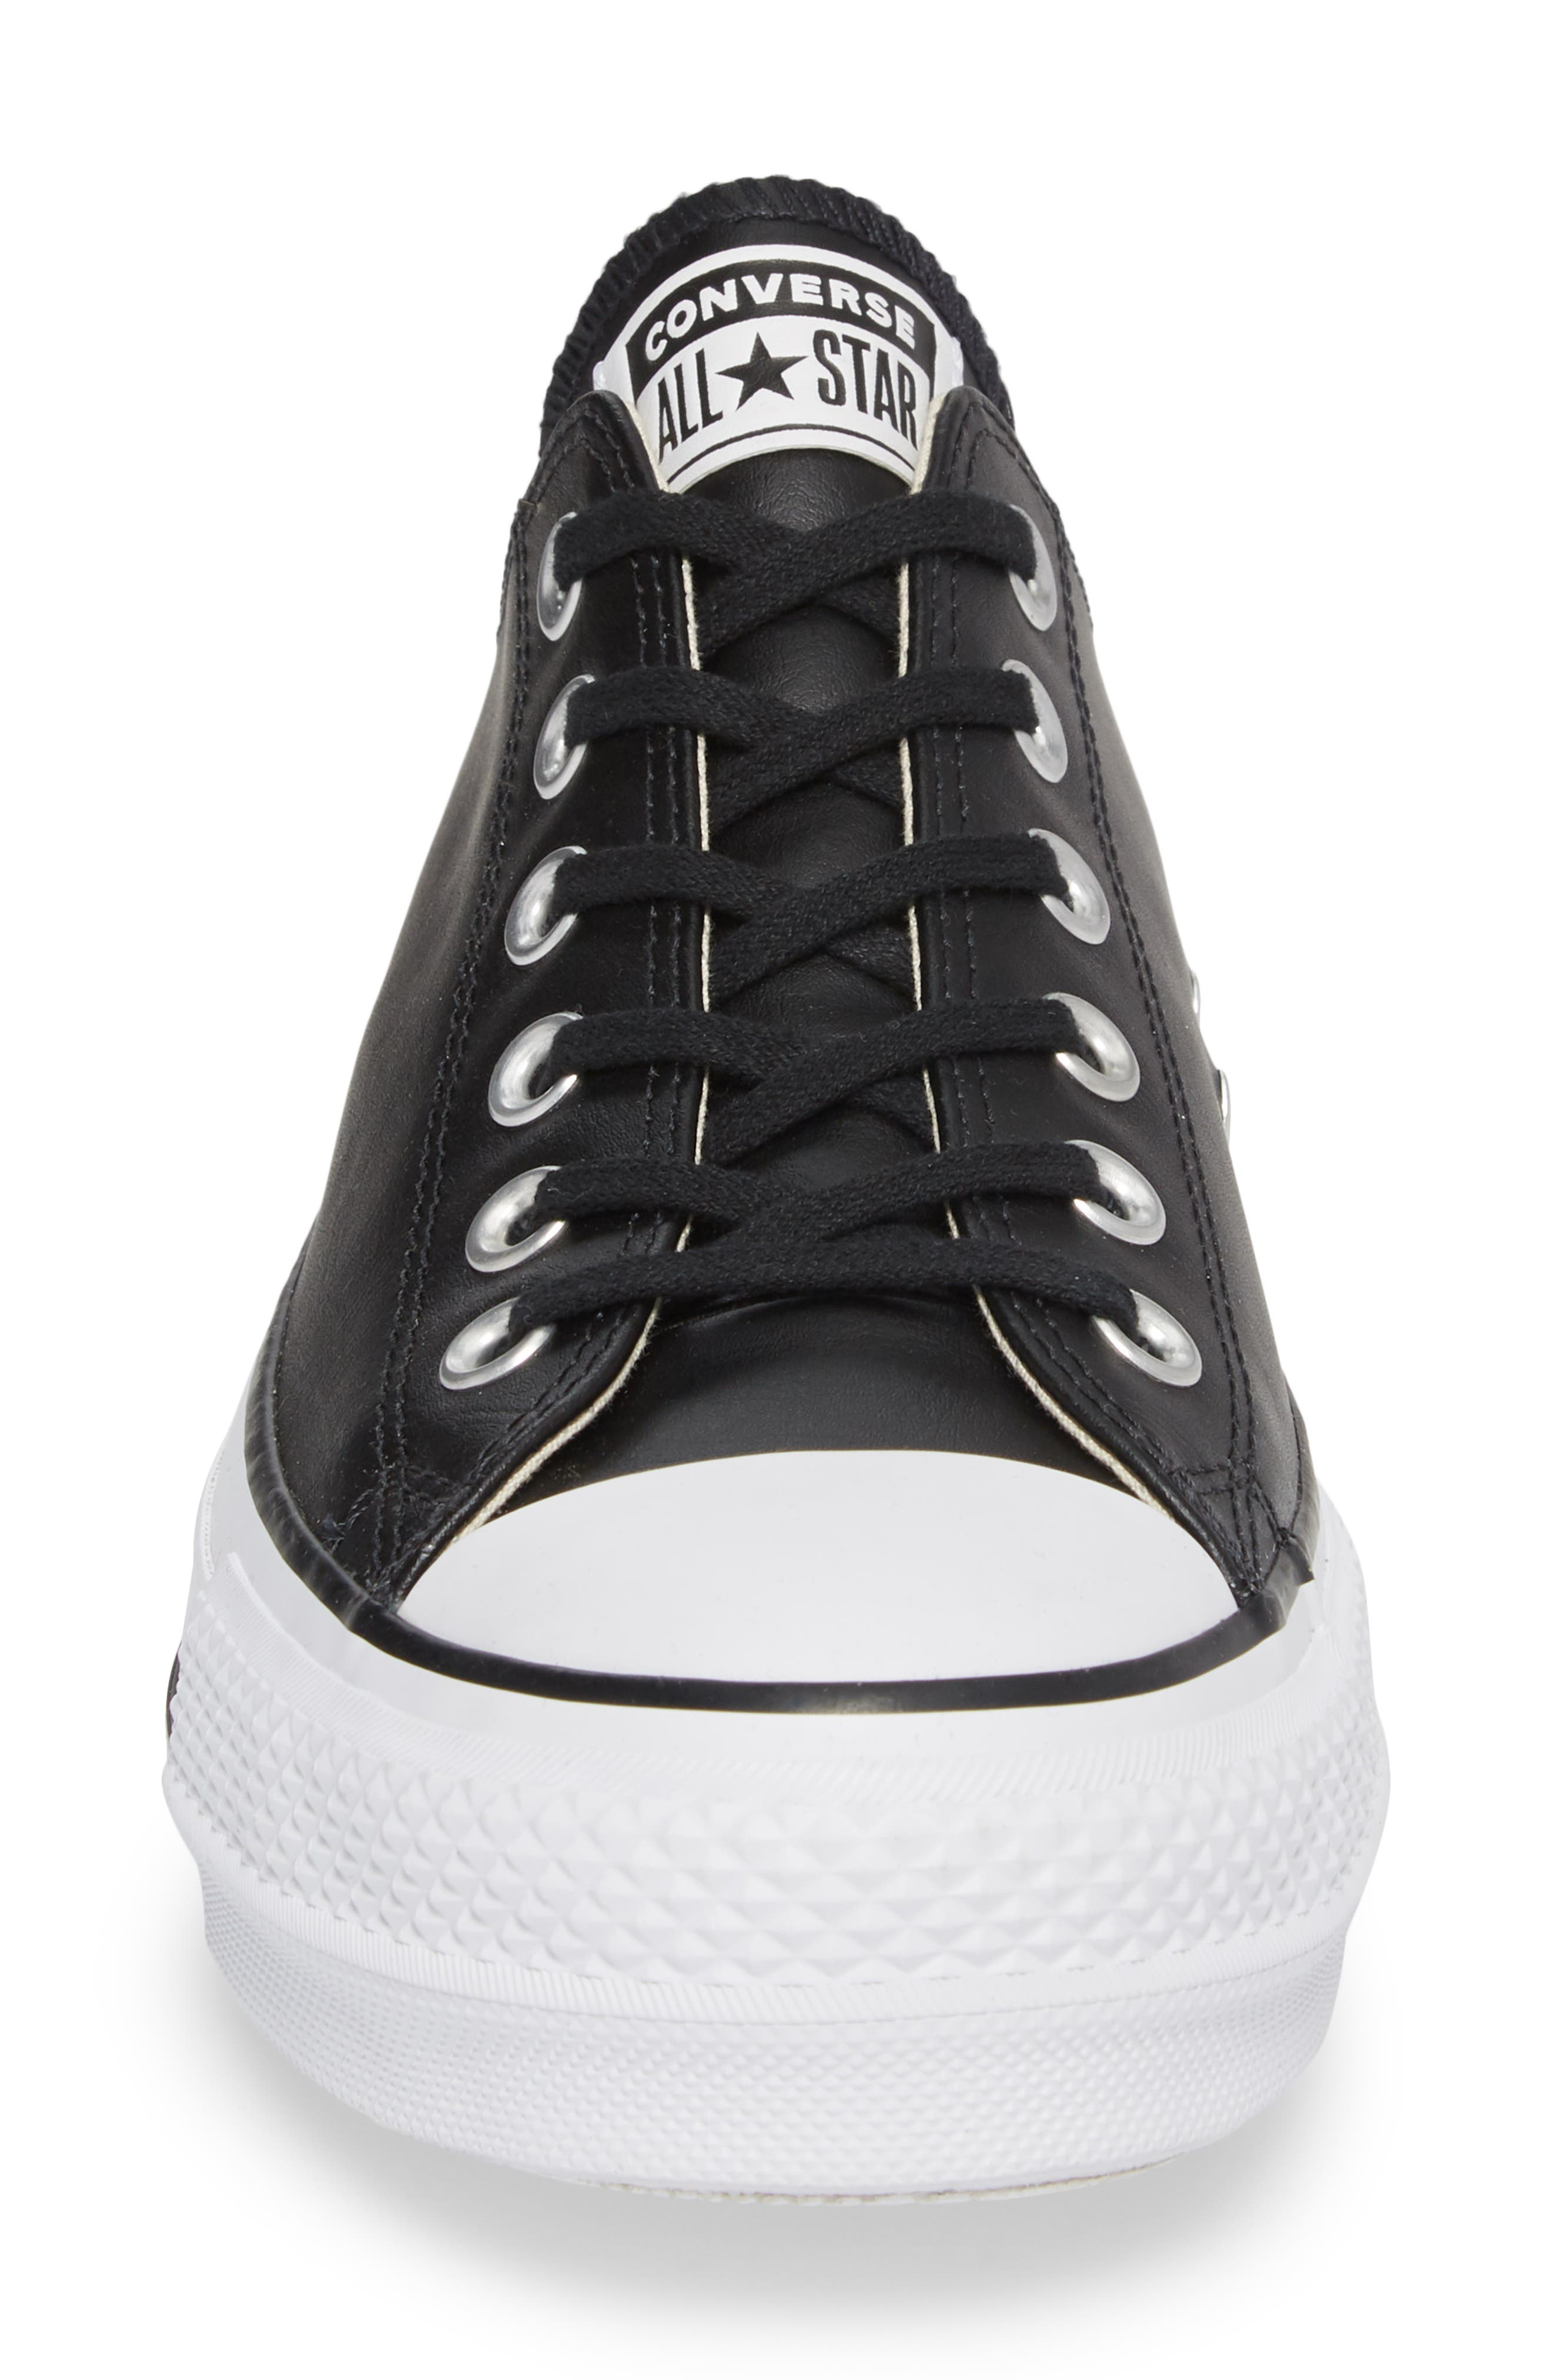 CONVERSE, Chuck Taylor<sup>®</sup> All Star<sup>®</sup> Platform Sneaker, Alternate thumbnail 4, color, BLACK/ BLACK LEATHER